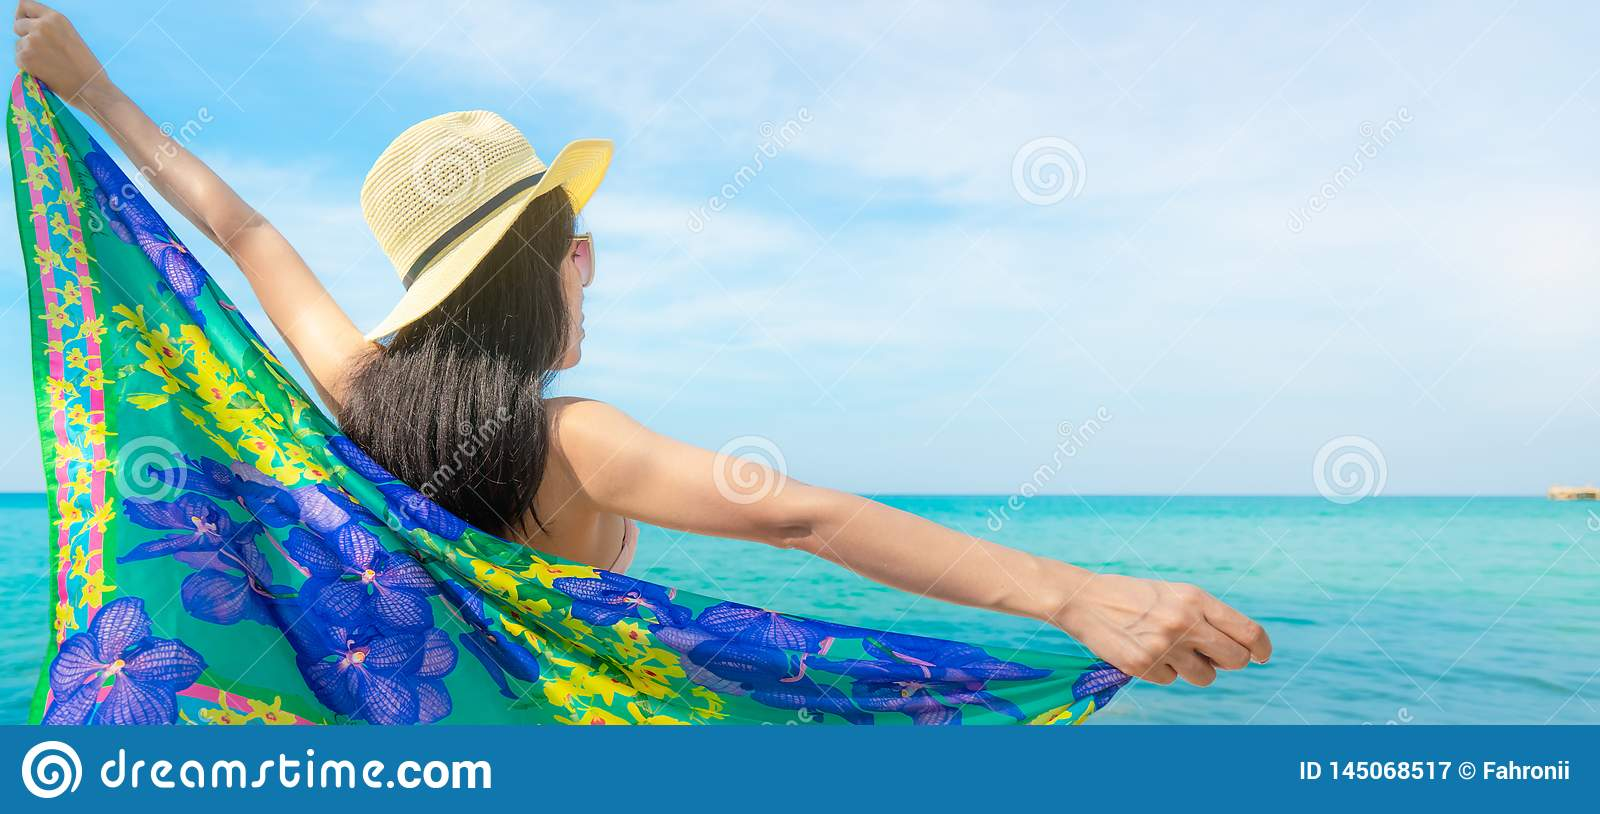 Back view of Asian woman wear swimsuit and opened arms at tropical beach on sunny day with beautiful blue sky and white clouds.